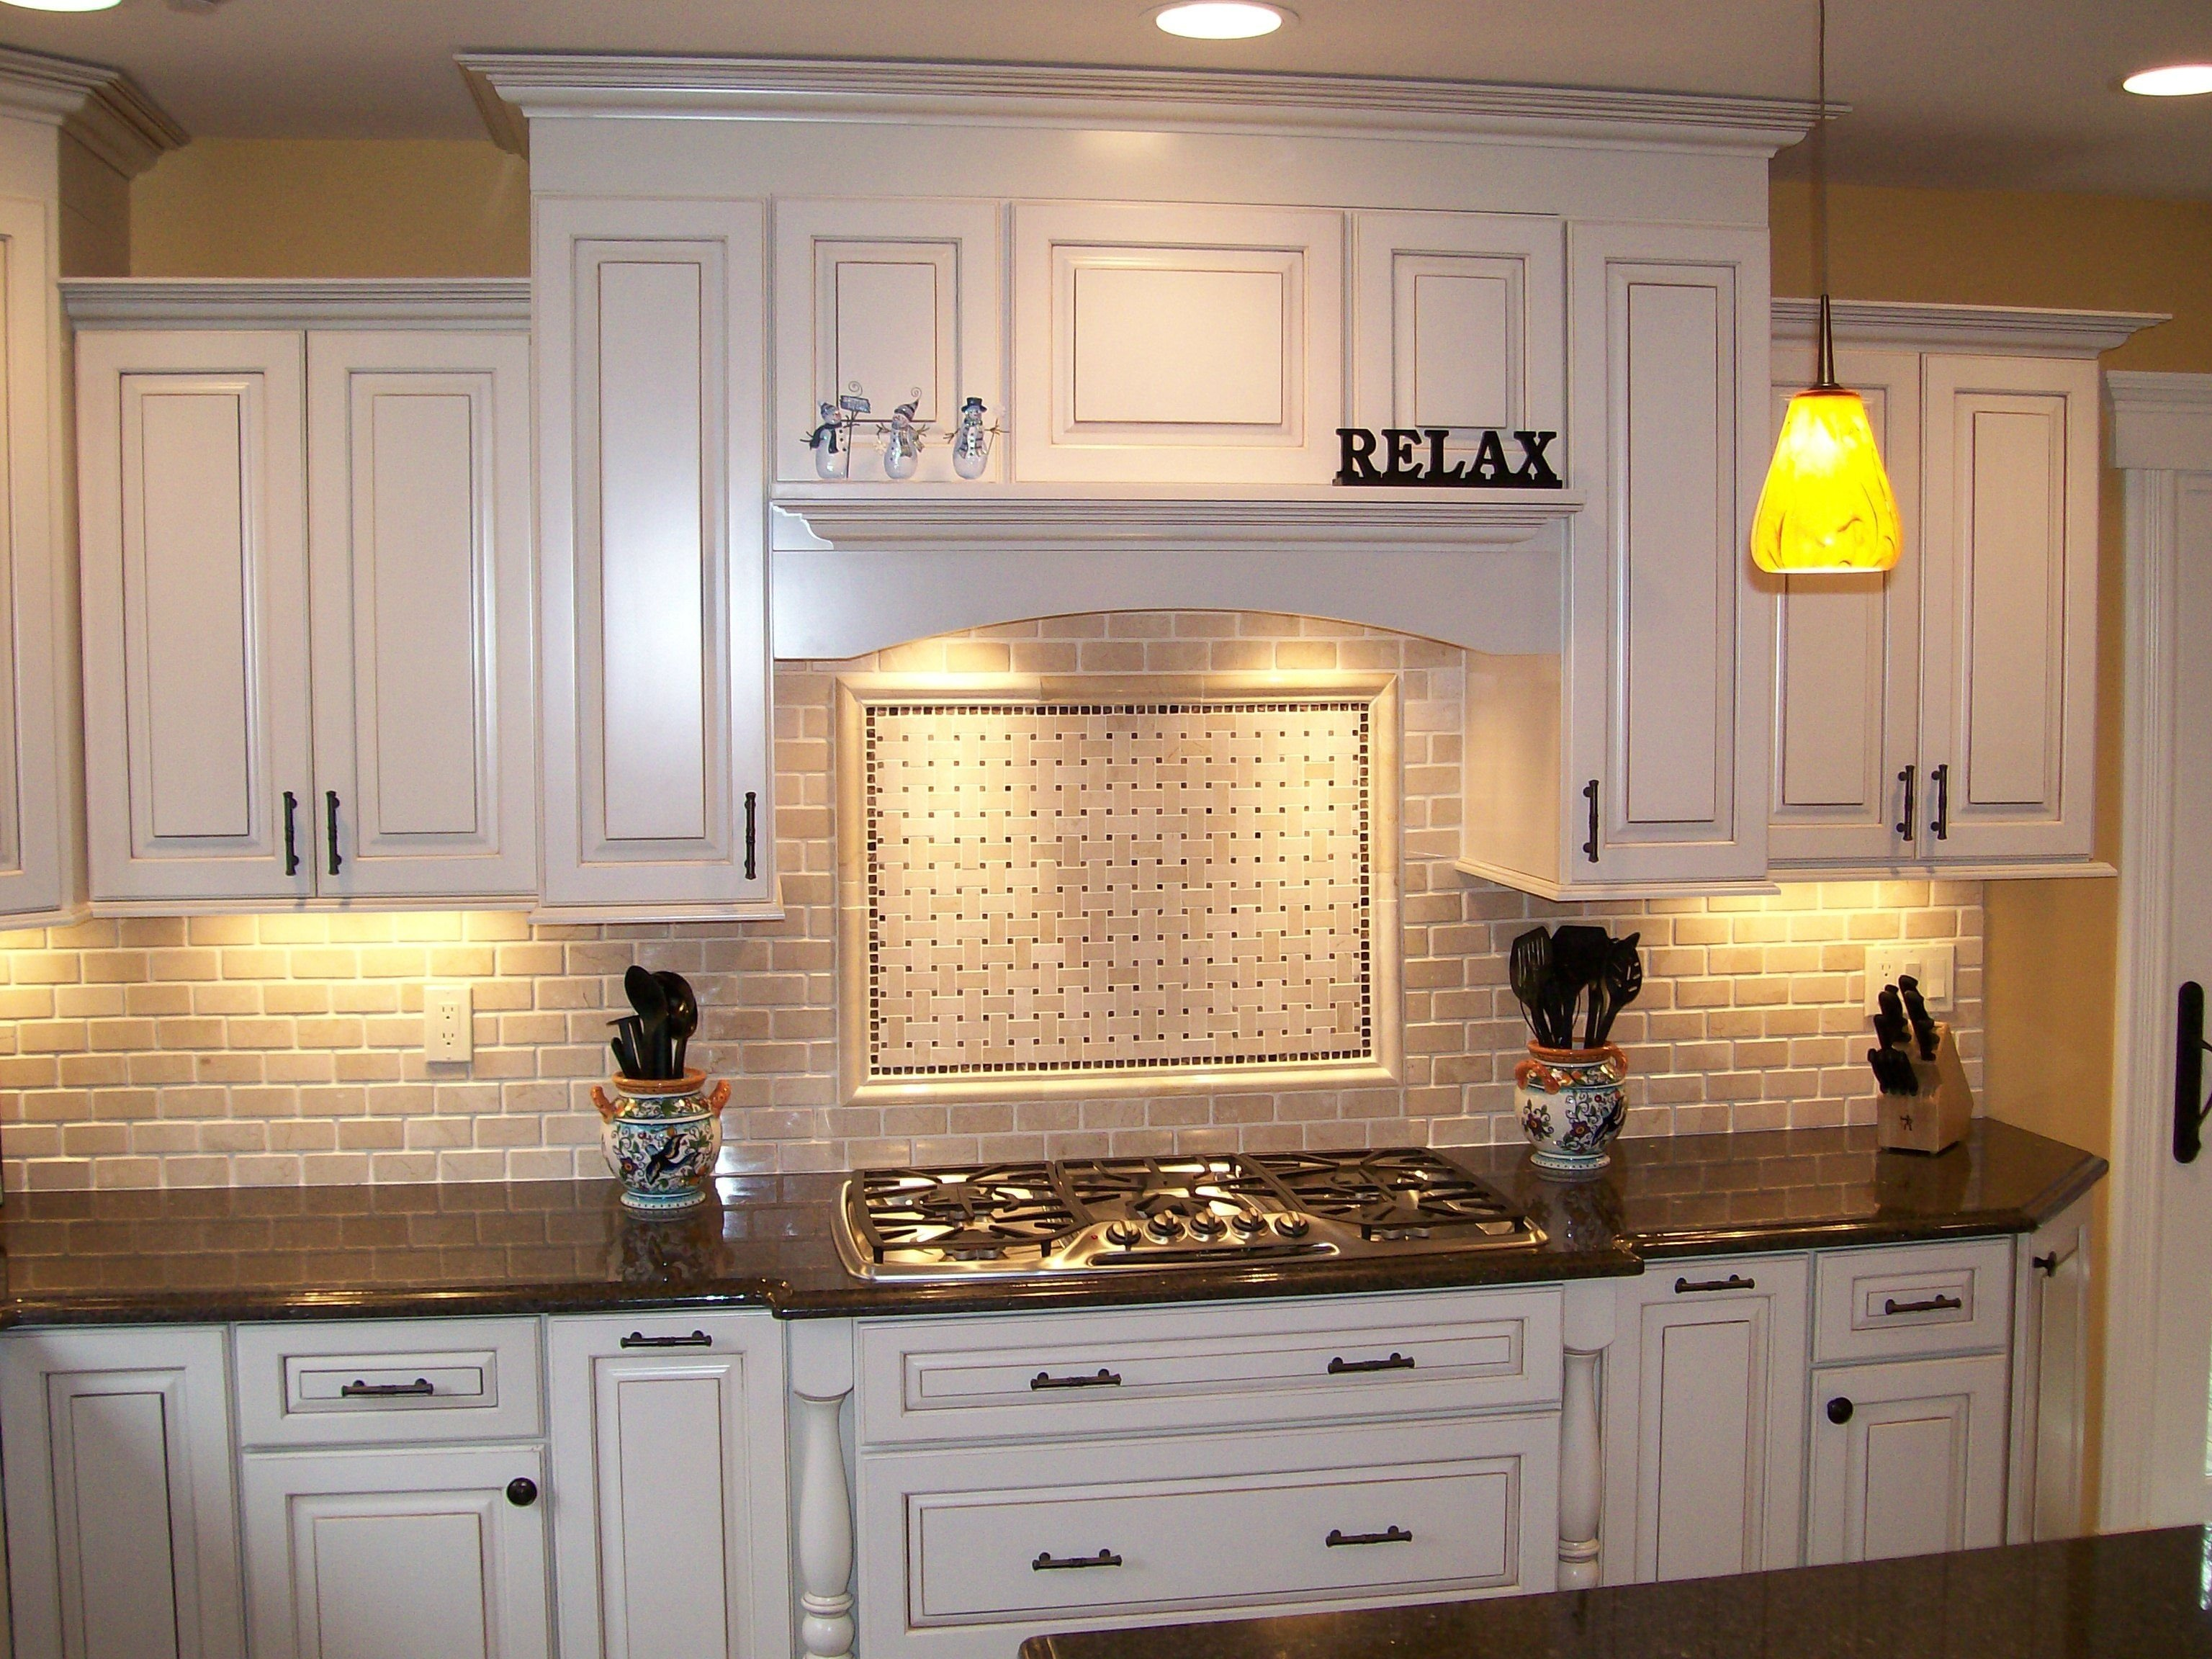 10 Wonderful Kitchen Backsplash Ideas White Cabinets warm design white cabinets kitchen backsplash ideas white cabinets 2020